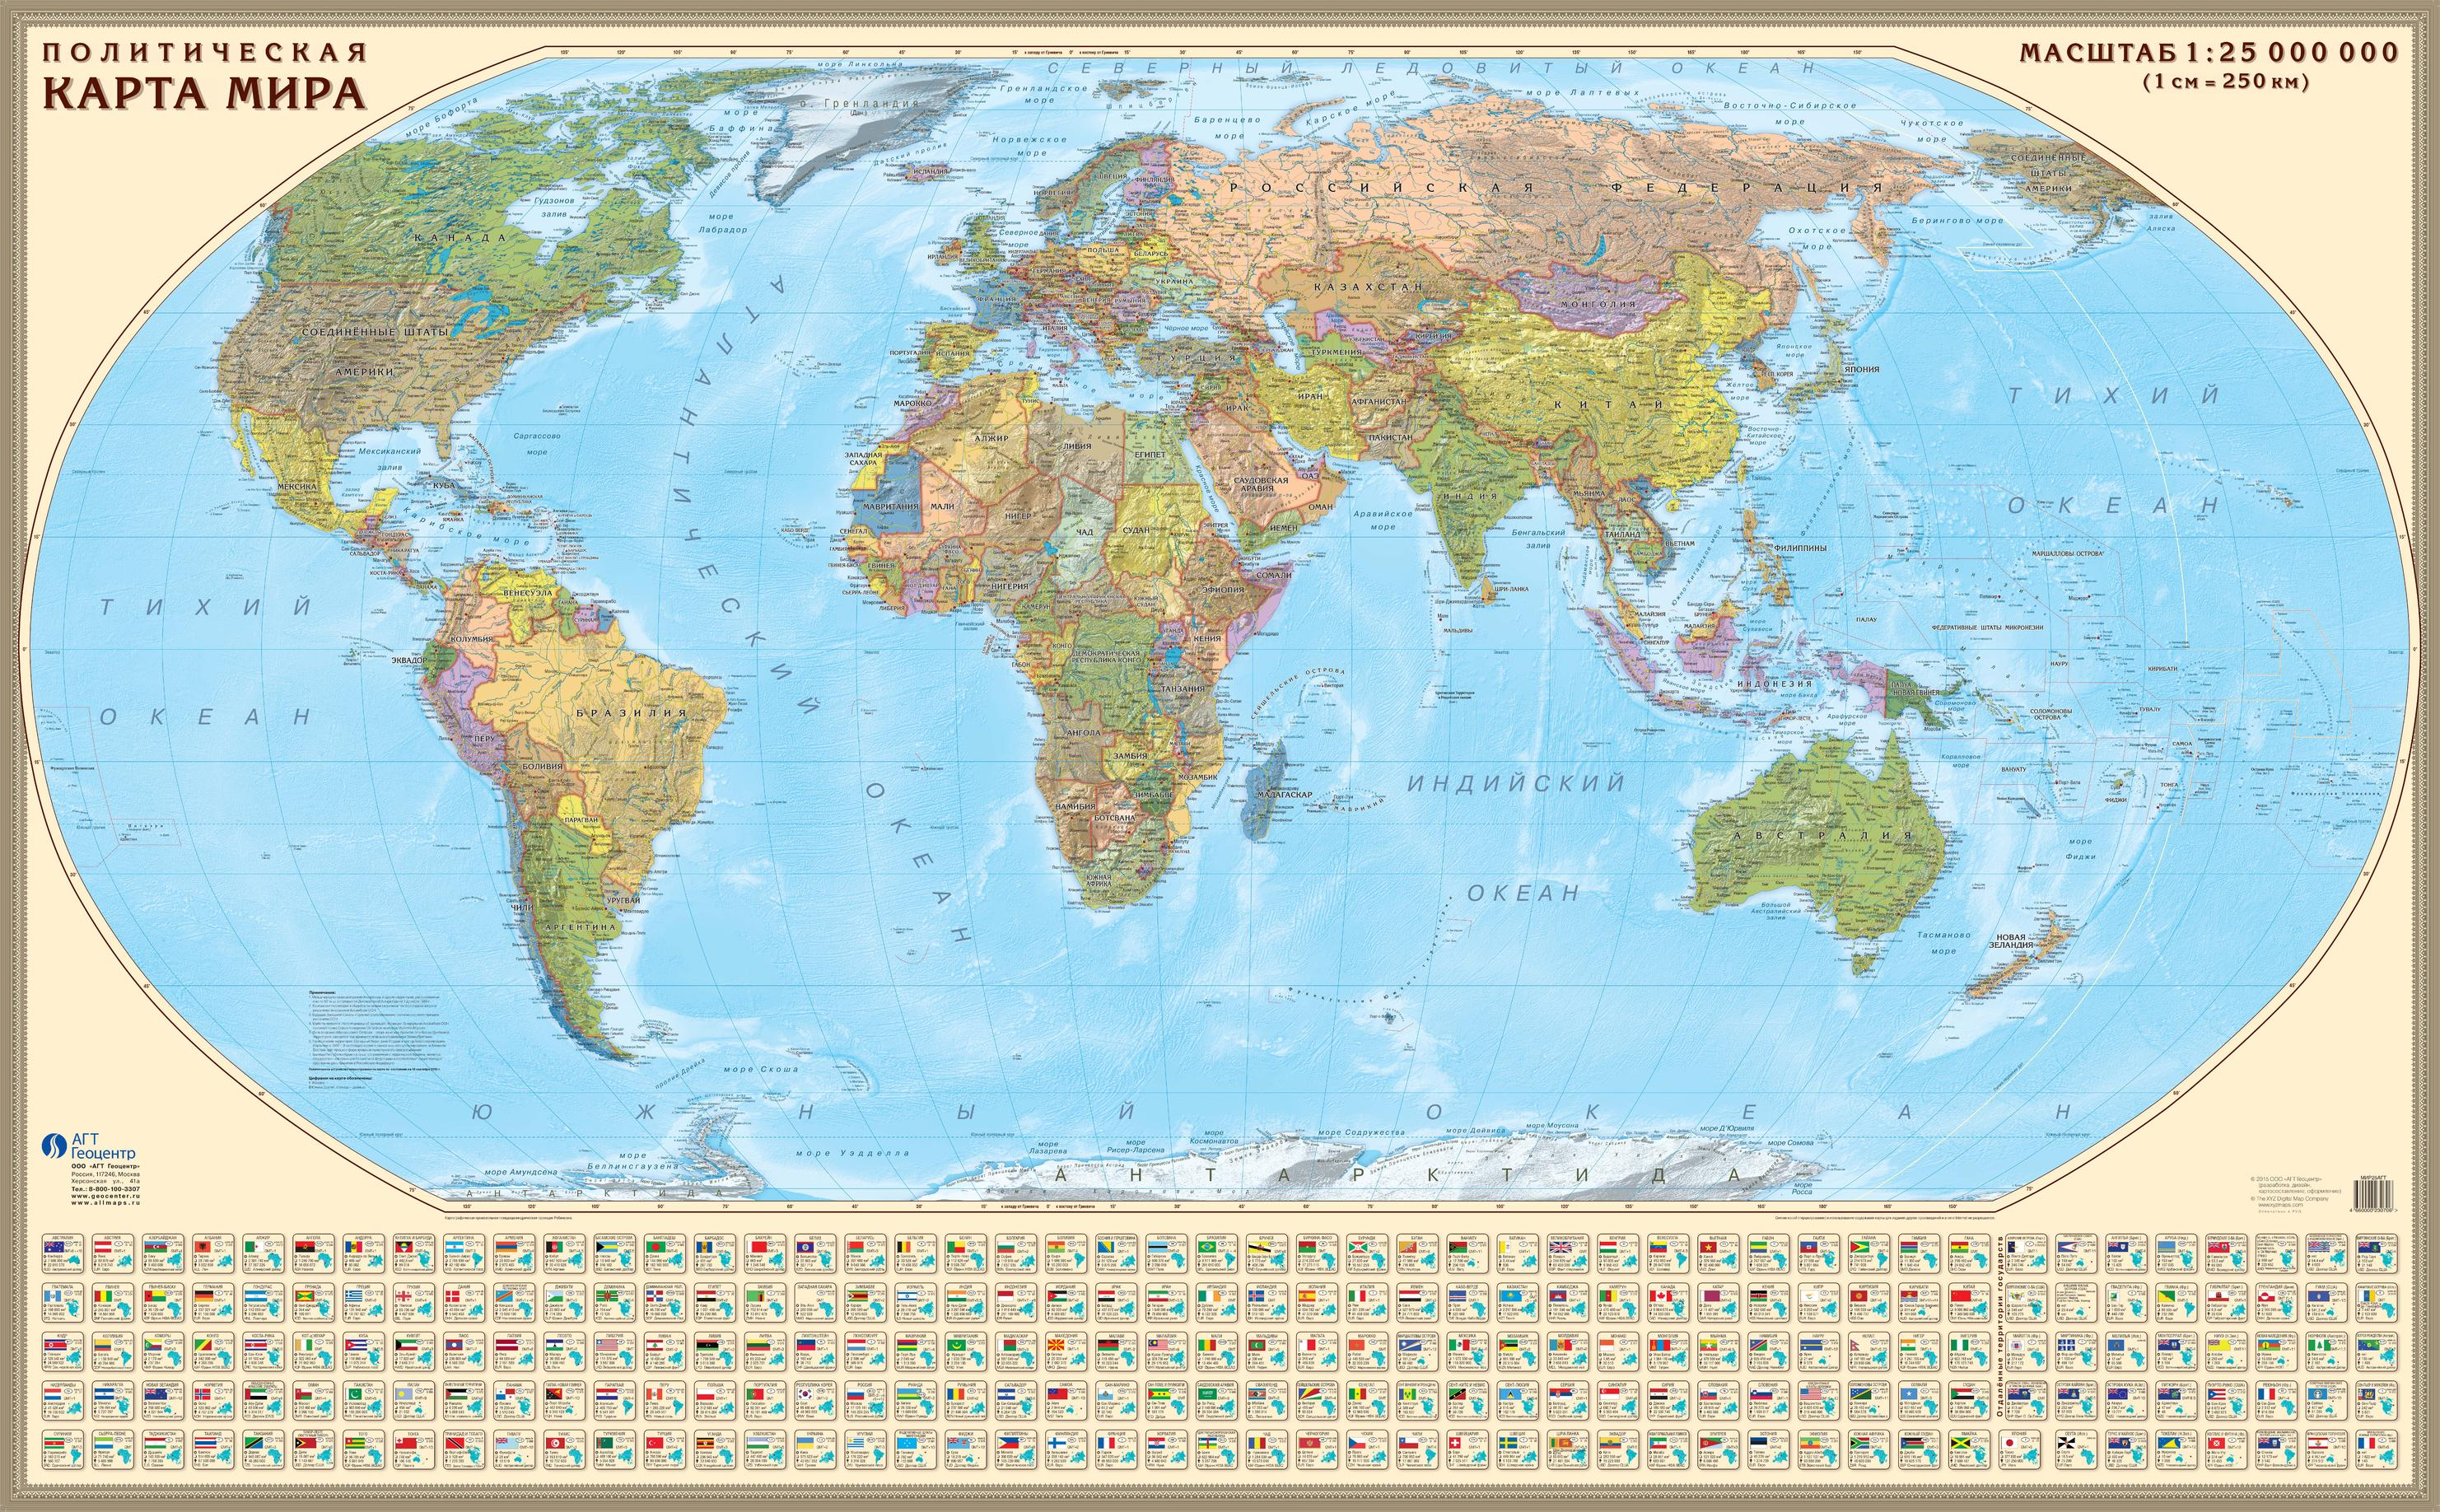 World Wall Map 1:25,000,000 - Robinson Projection (in Russian)